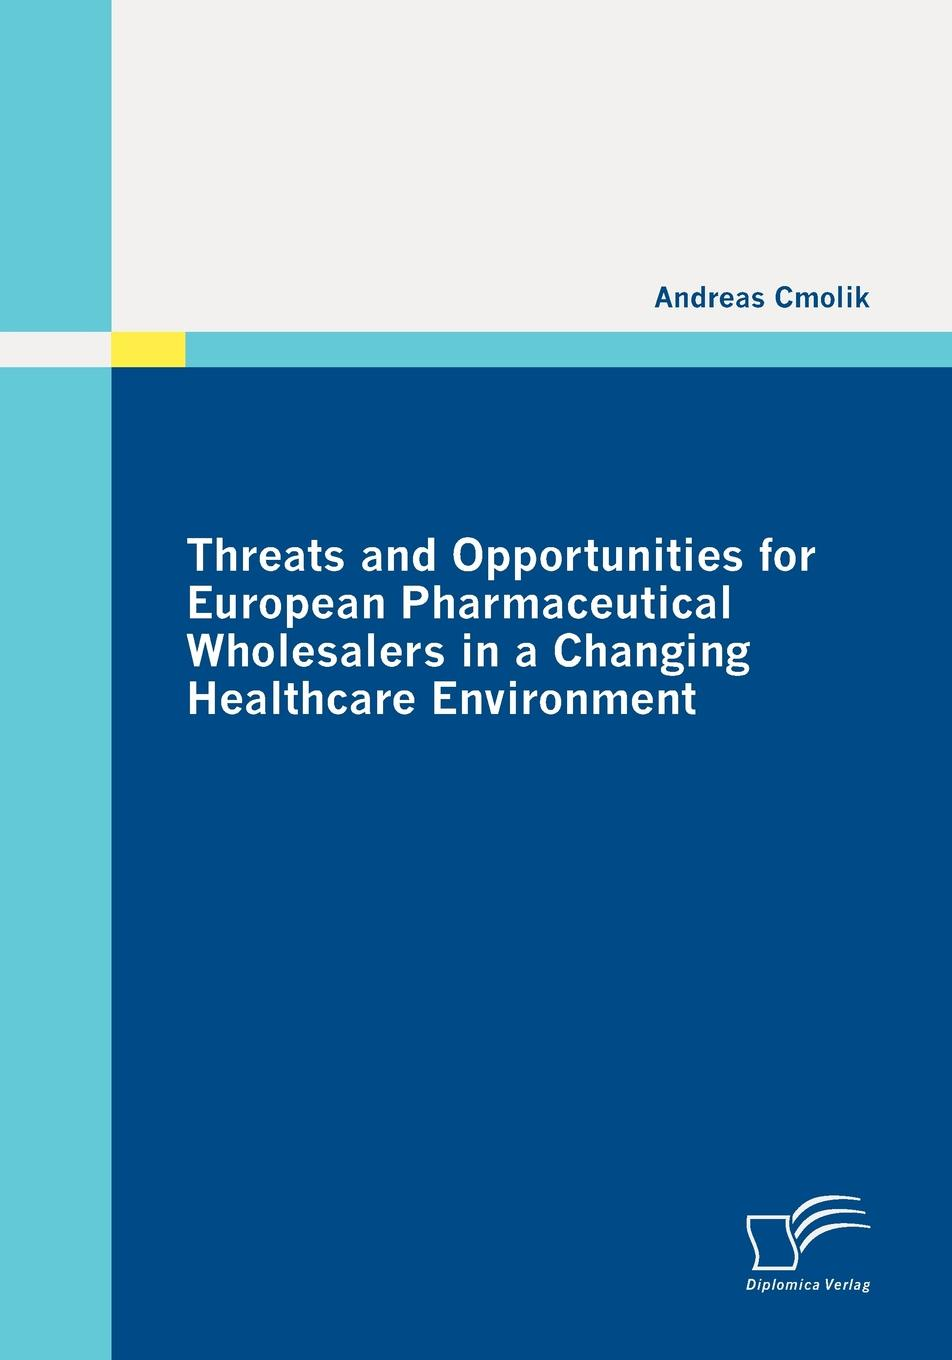 Andreas Cmolik Threats and Opportunities for European Pharmaceutical Wholesalers in a Changing Healthcare Environment rehabilitation physiotherapy low level laser therapy equipment healthcare supplies